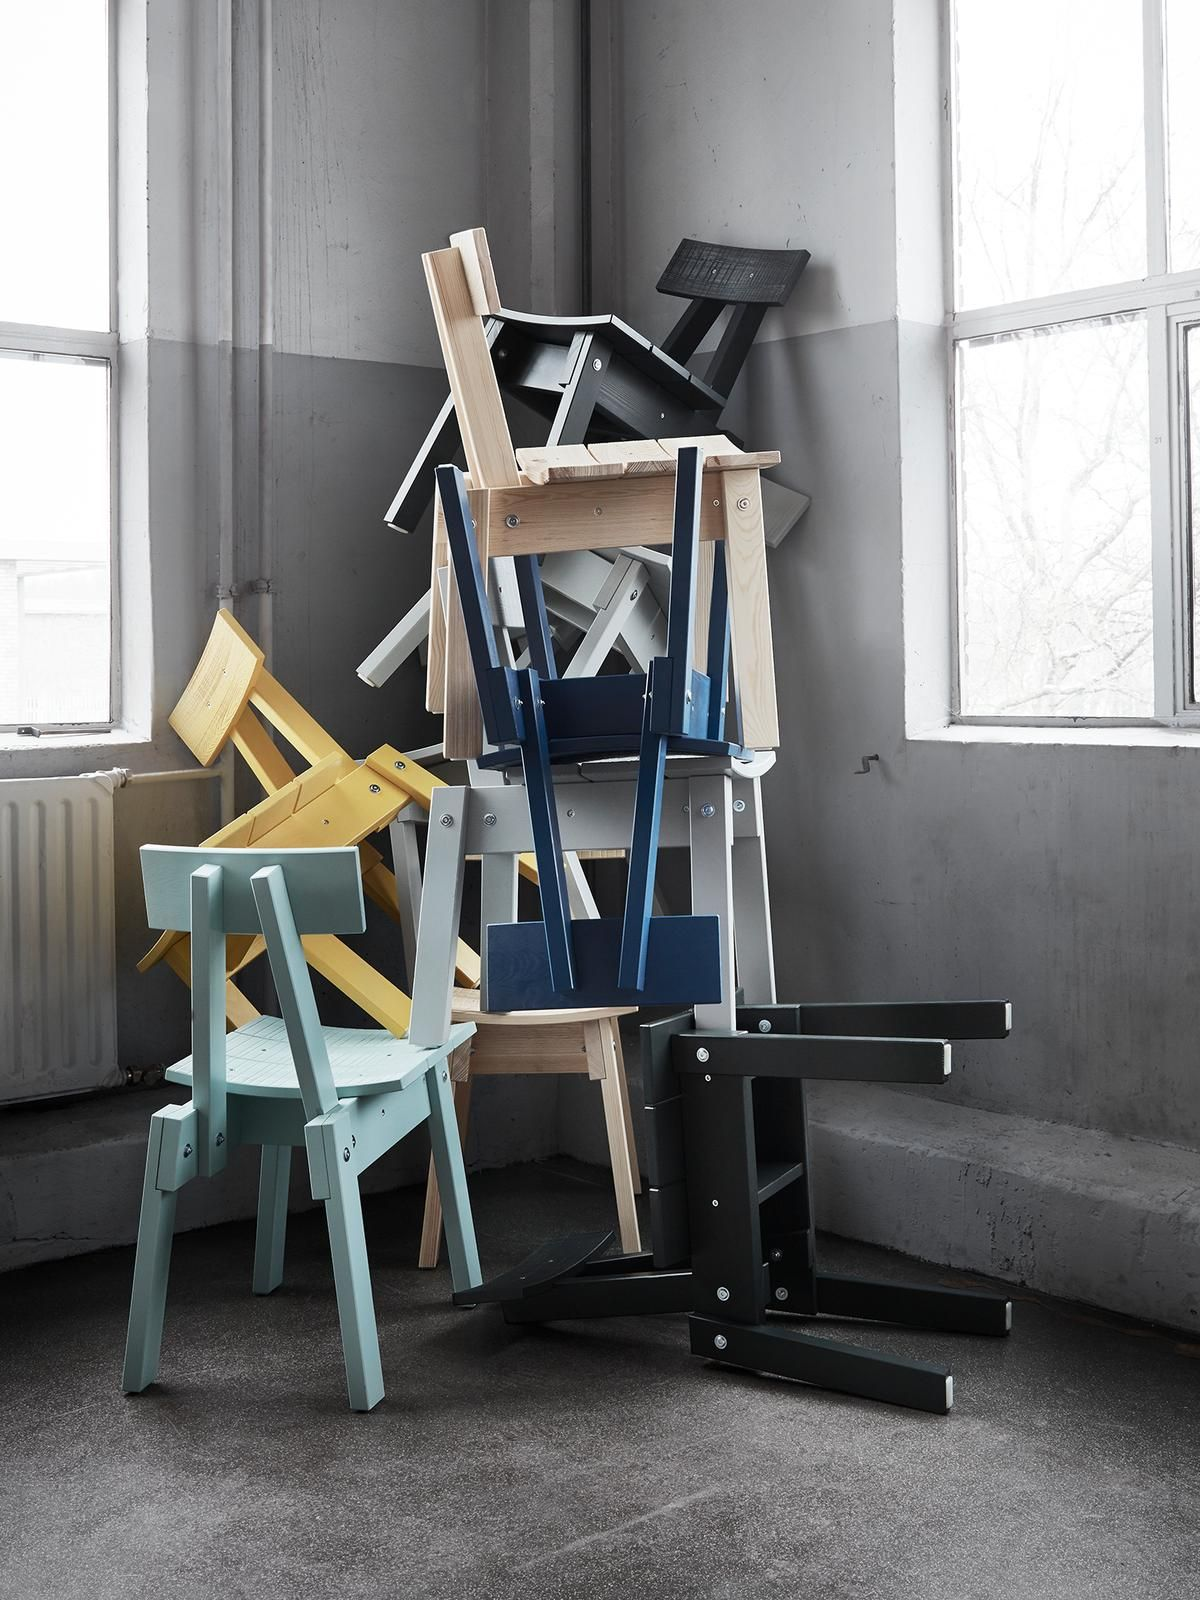 Ikea's new collection celebrates imperfections Unwanted